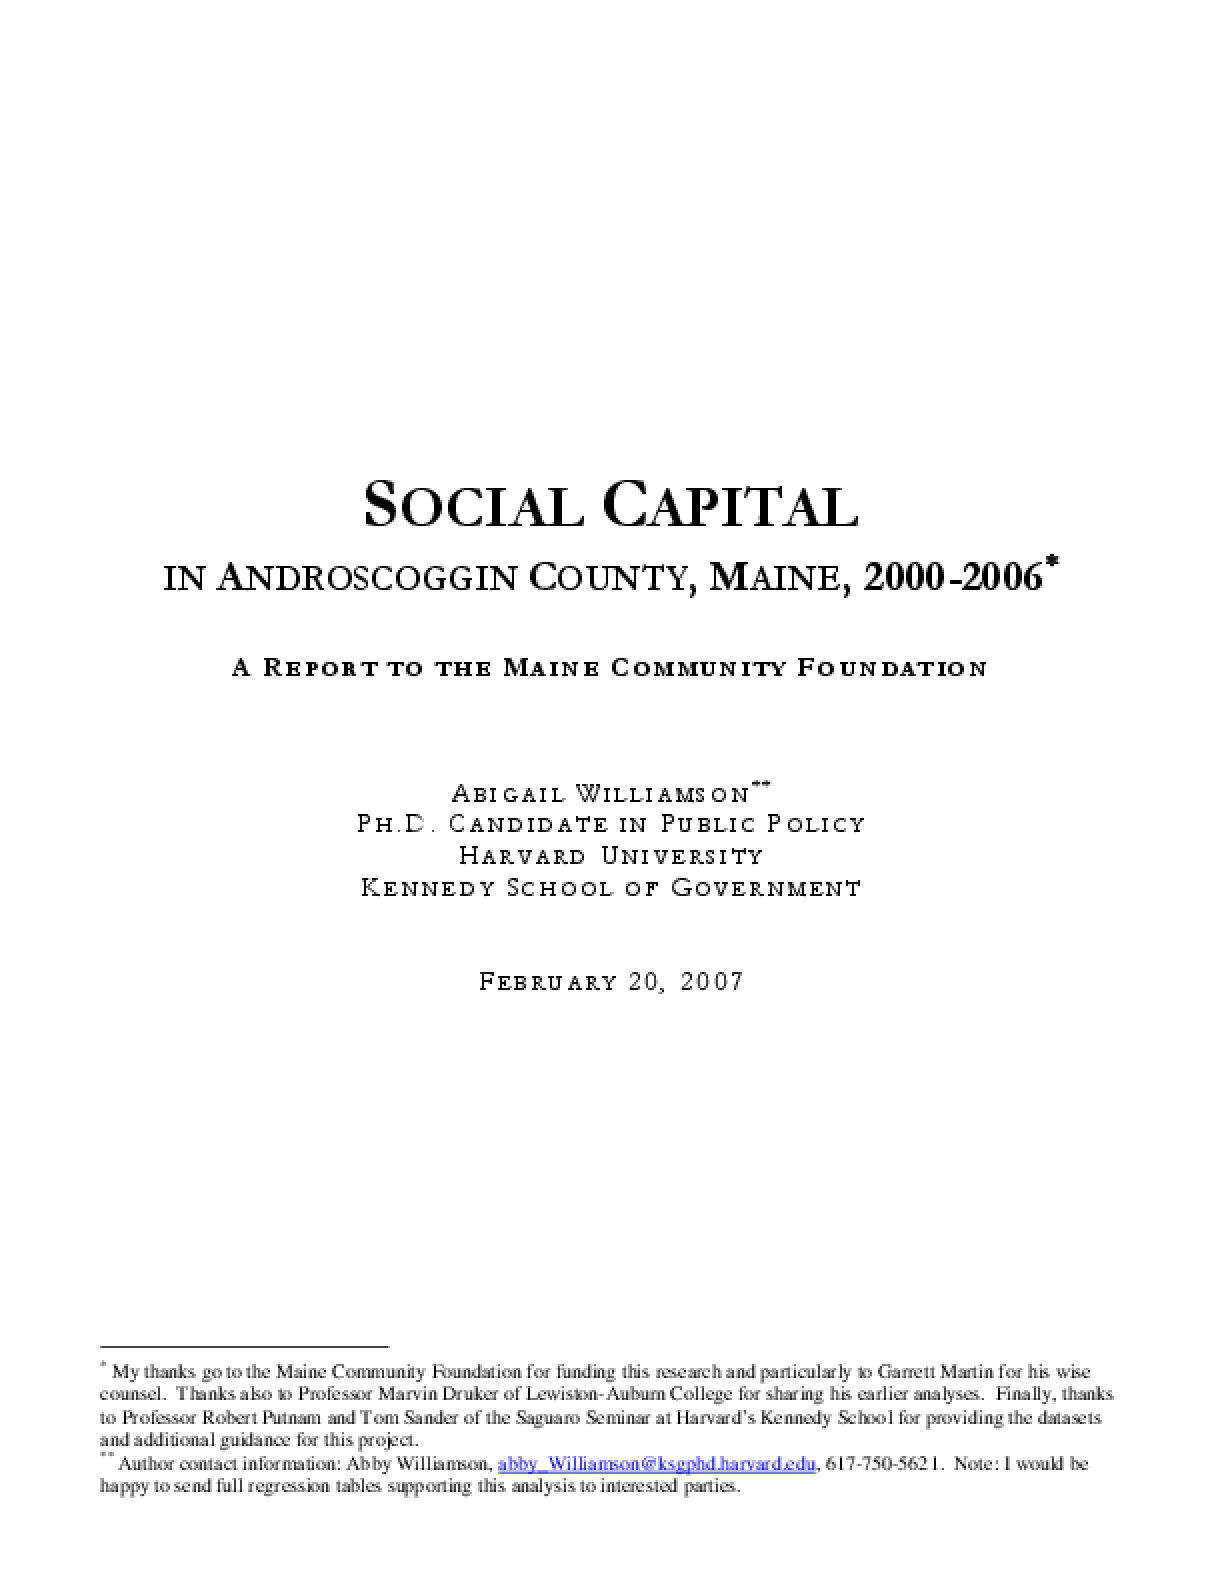 Social Capital in Androscoggin County, Maine, 2000-2006: A Report to the Maine Community Foundation